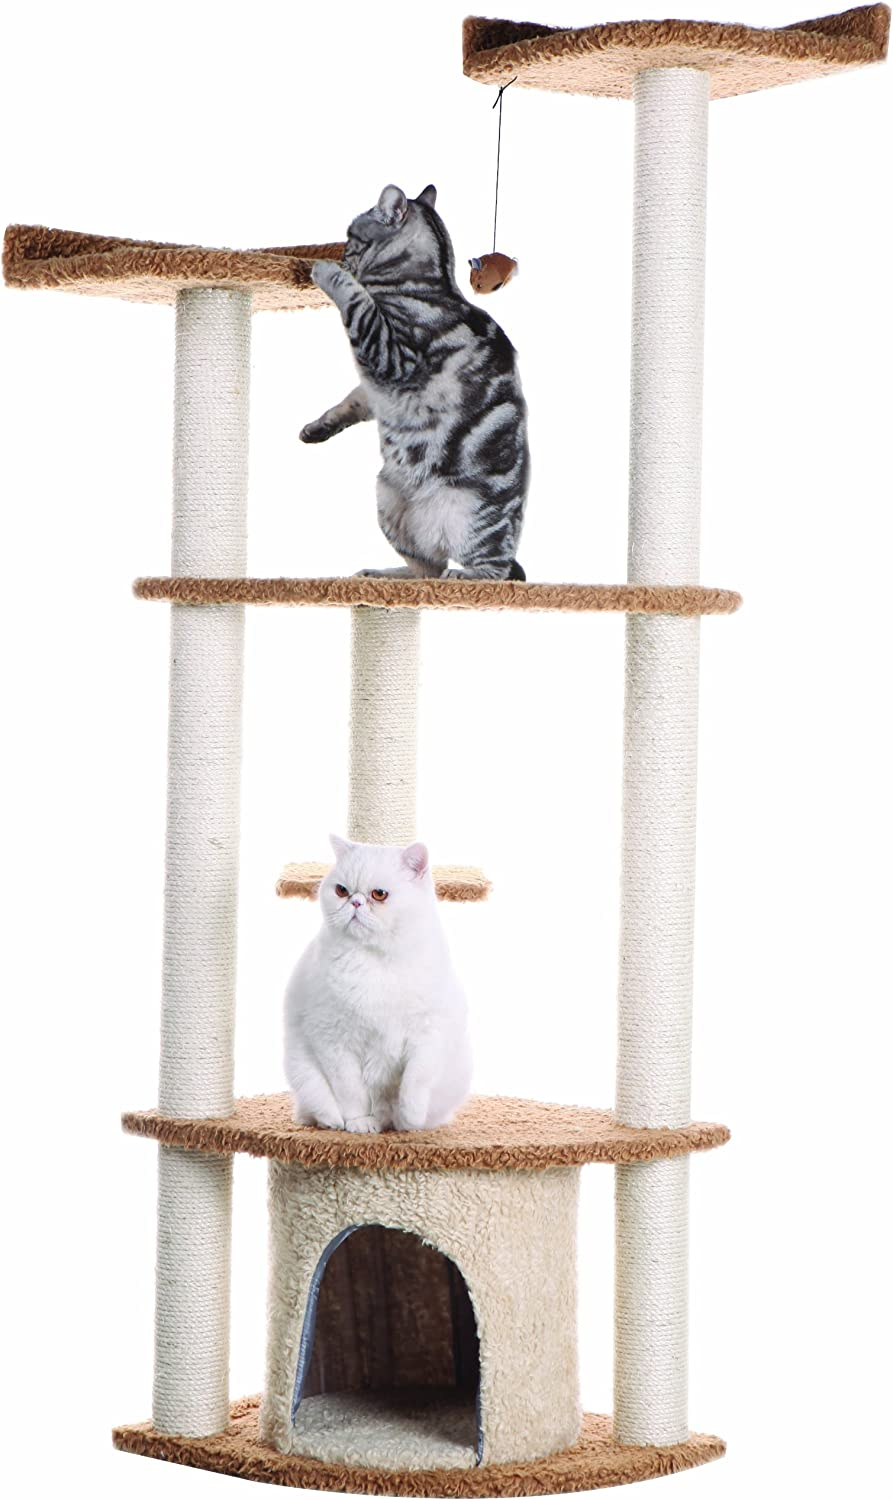 Armarkat 64 in Cat Tree House Condo Furniture - A6402, Chocolate